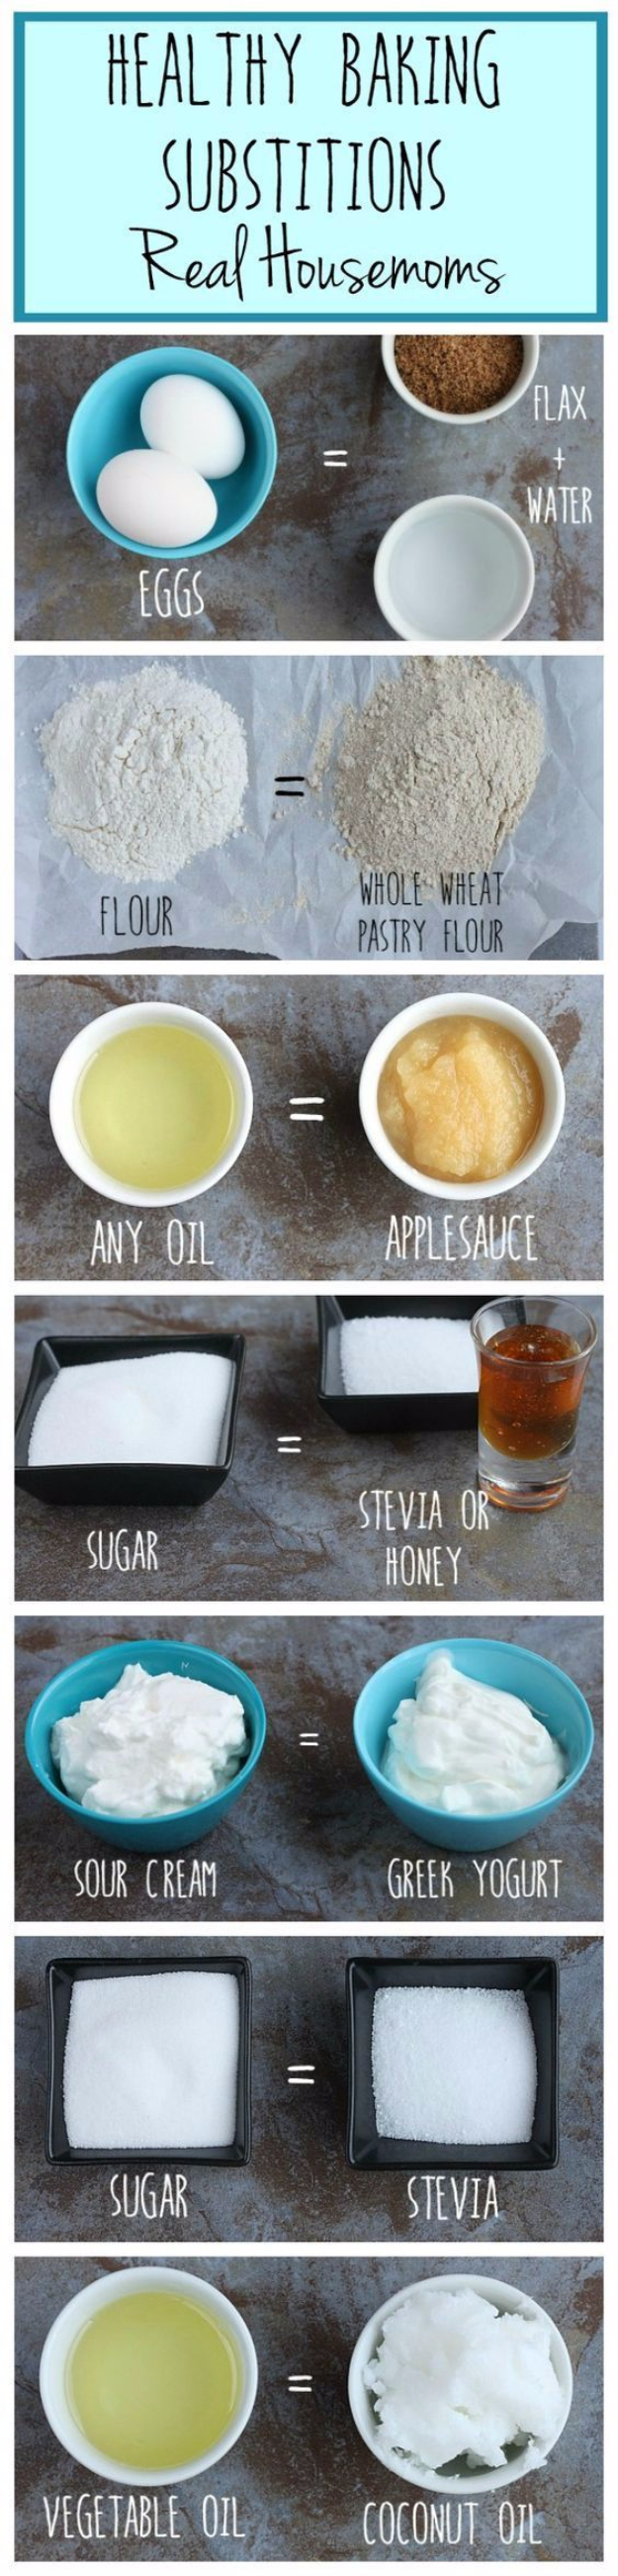 Best Baking Hacks - Healthy Baking Substitutions - DIY Cooking Tips and Tricks for Baking Recipes - Quick Ways to Bake Cake, Cupcakes, Desserts and Cookies - Kitchen Lifehacks for Bakers